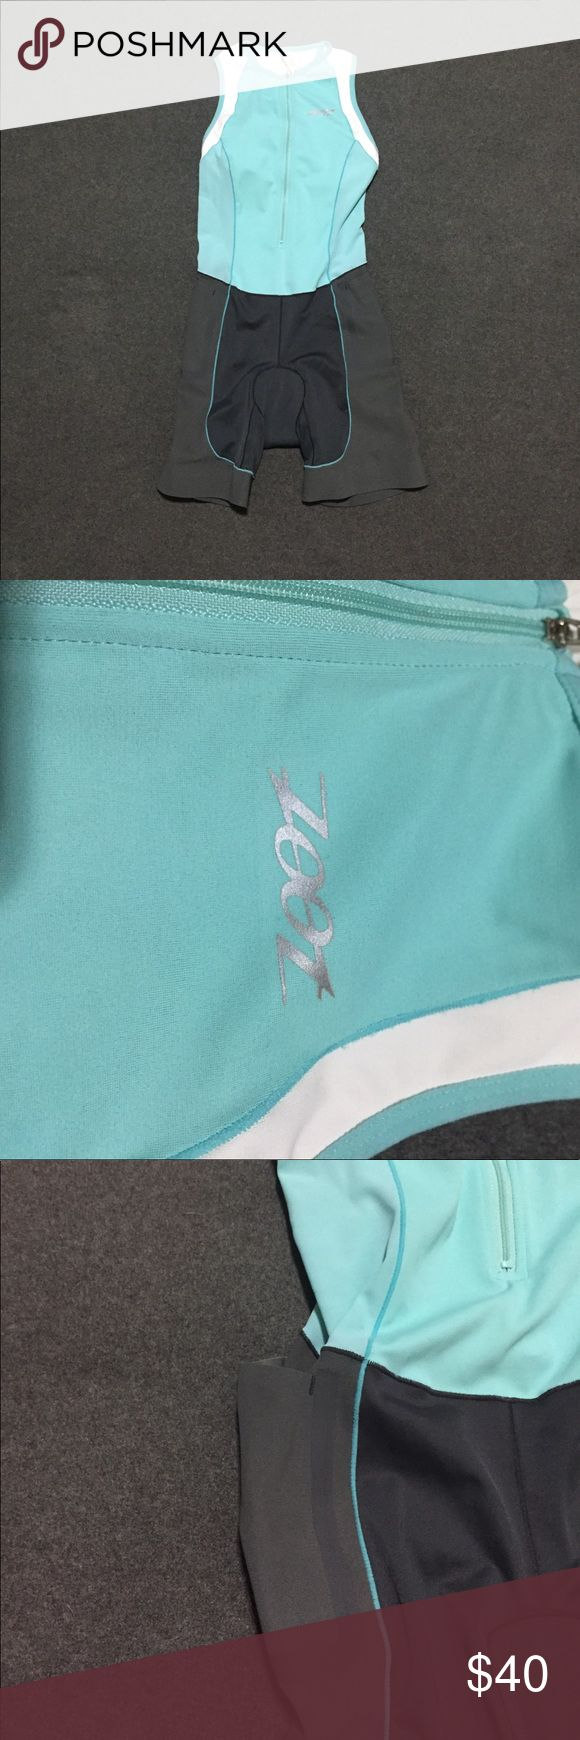 Zoot Triathlon Suit This is a new-without-tags one-piece Zoot triathlon suit. I won it at a race, but have never worn it. Features: lined zip-front tank on top; saddle shorts on bottom with two side pockets (shown in photo); light aqua & gray color design. Zoot Other